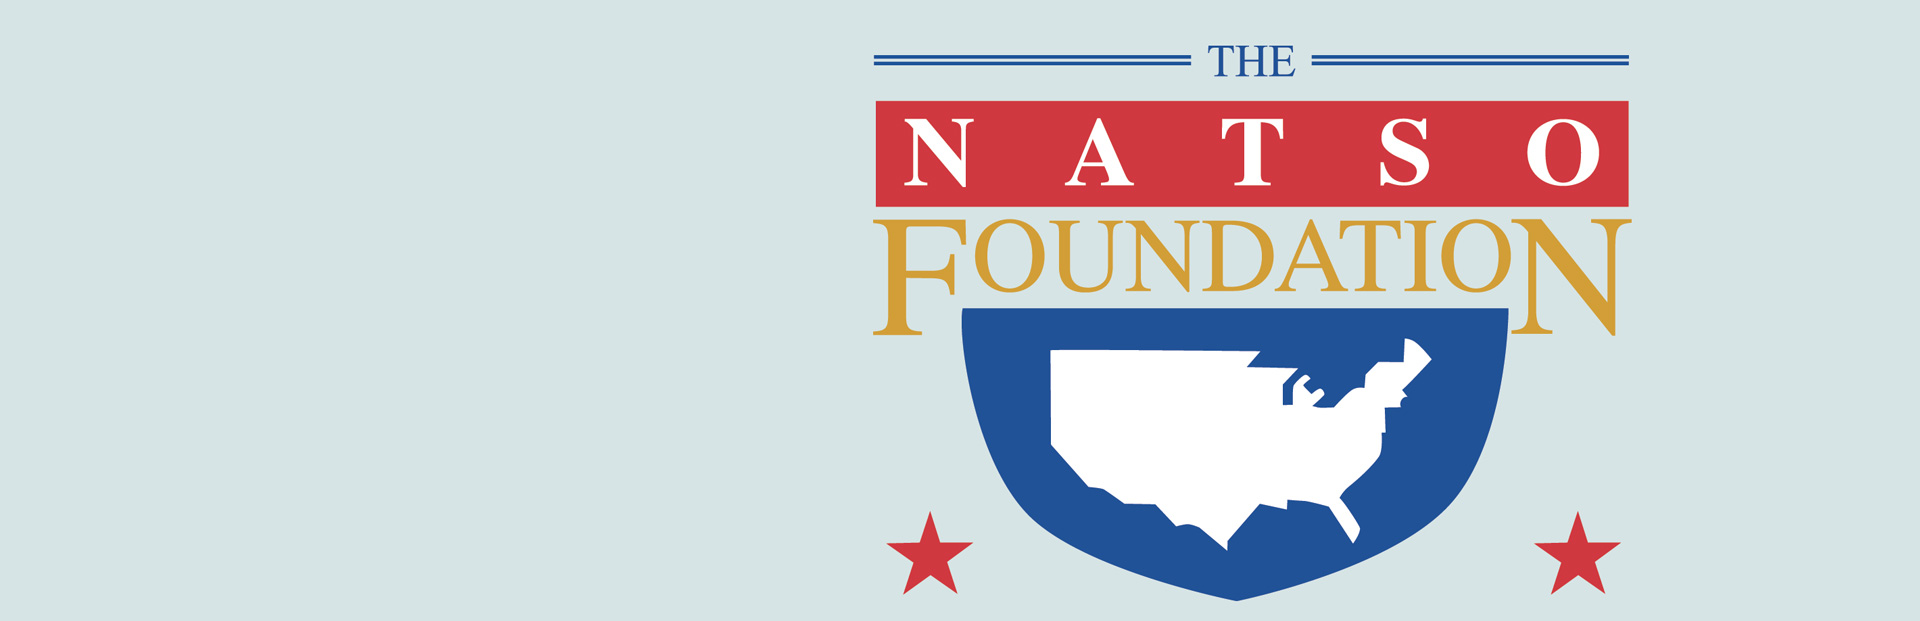 Donate to the NATSO Foundation